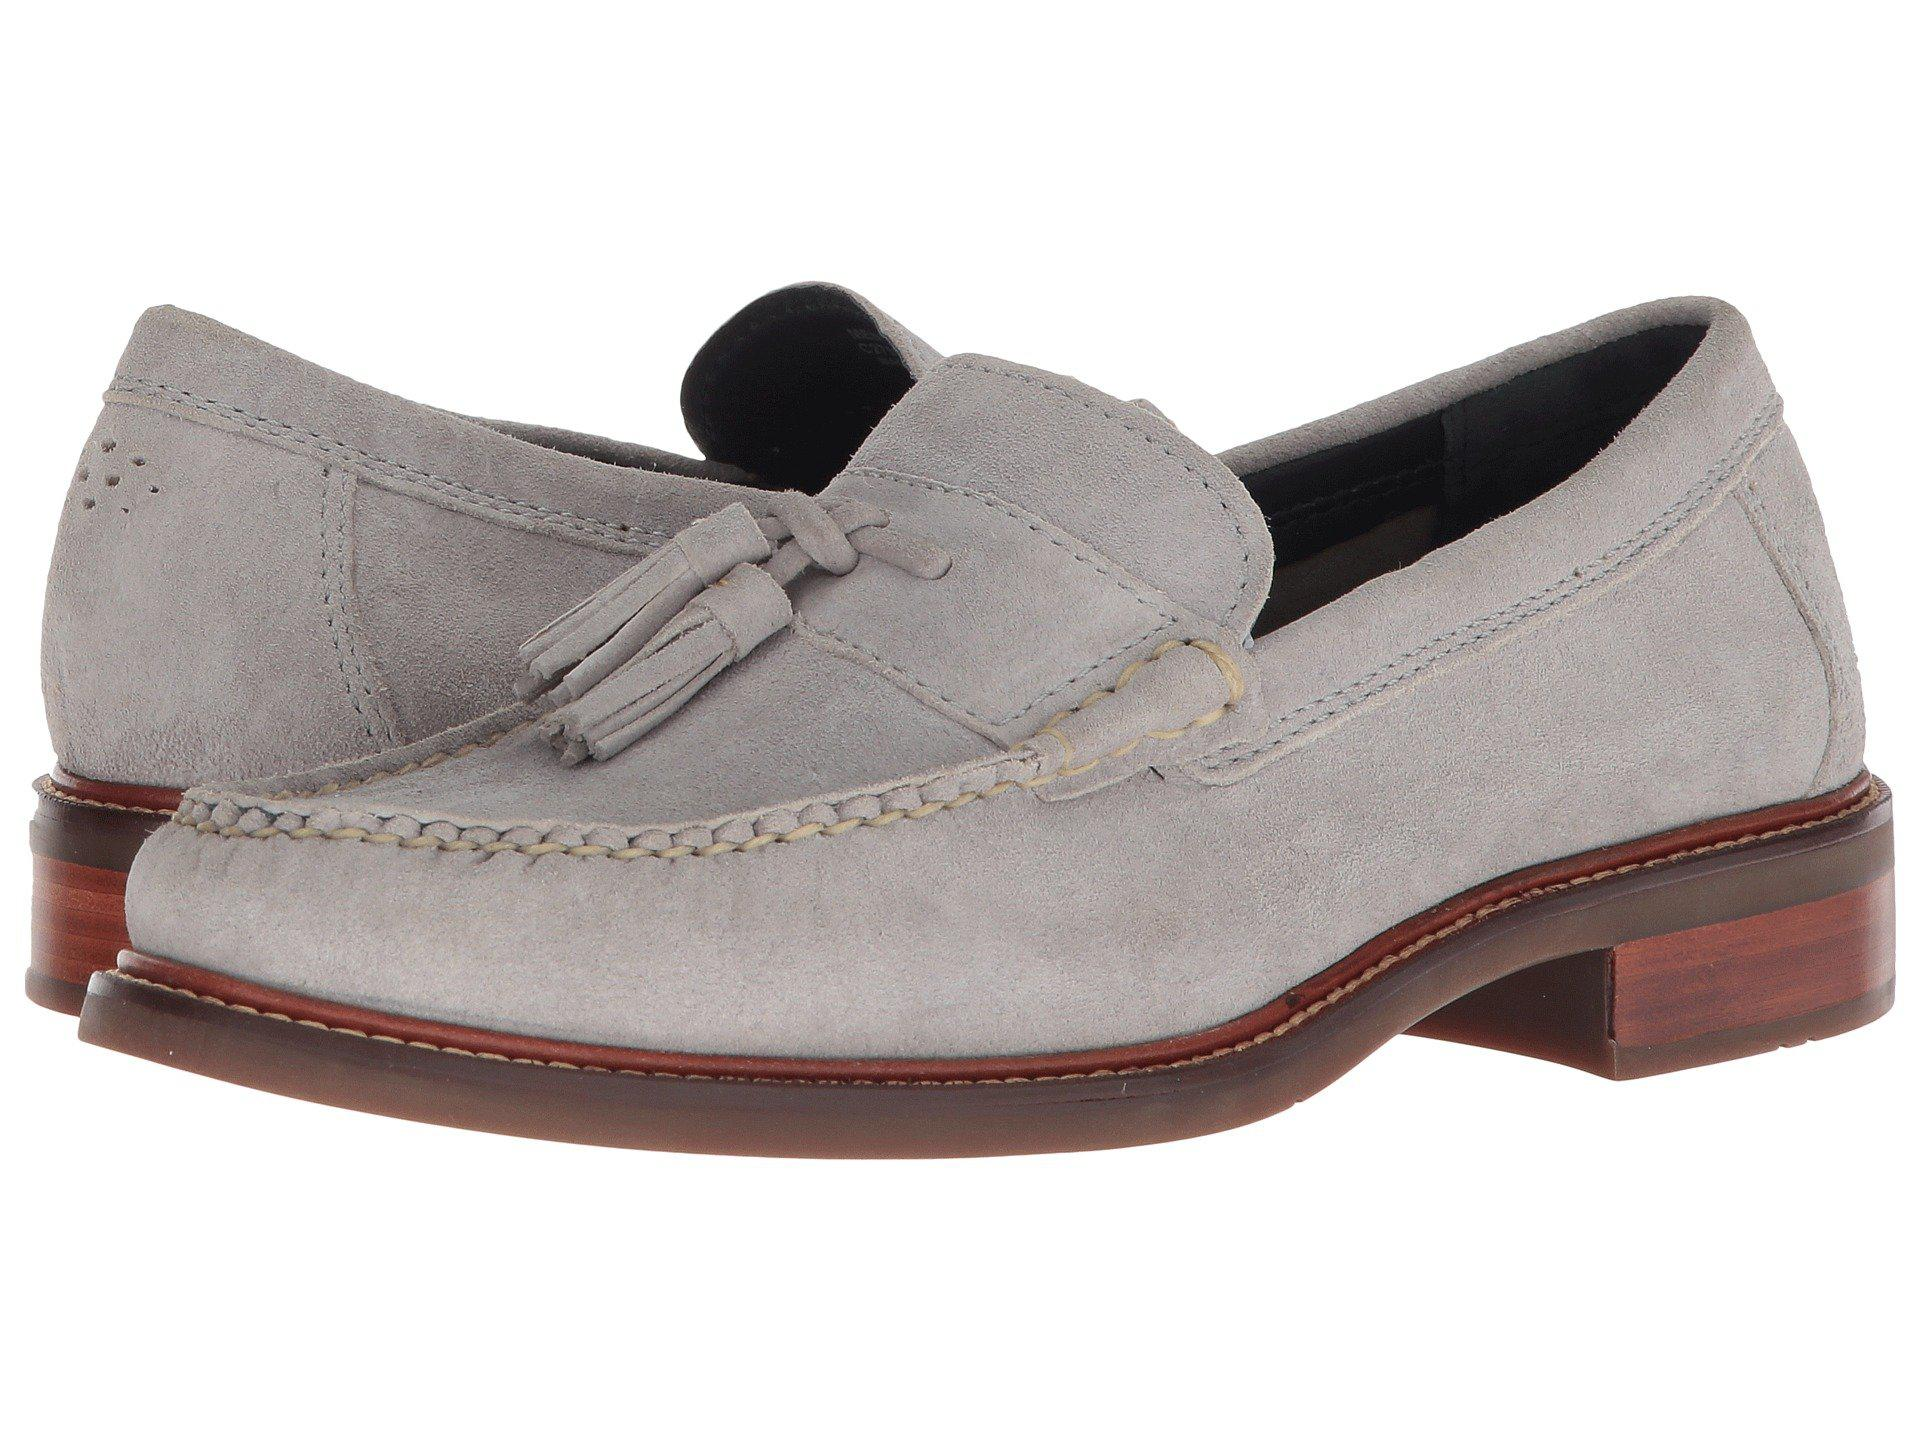 Cole Haan Pinch Sanford Tassel Loafer HrZTnU